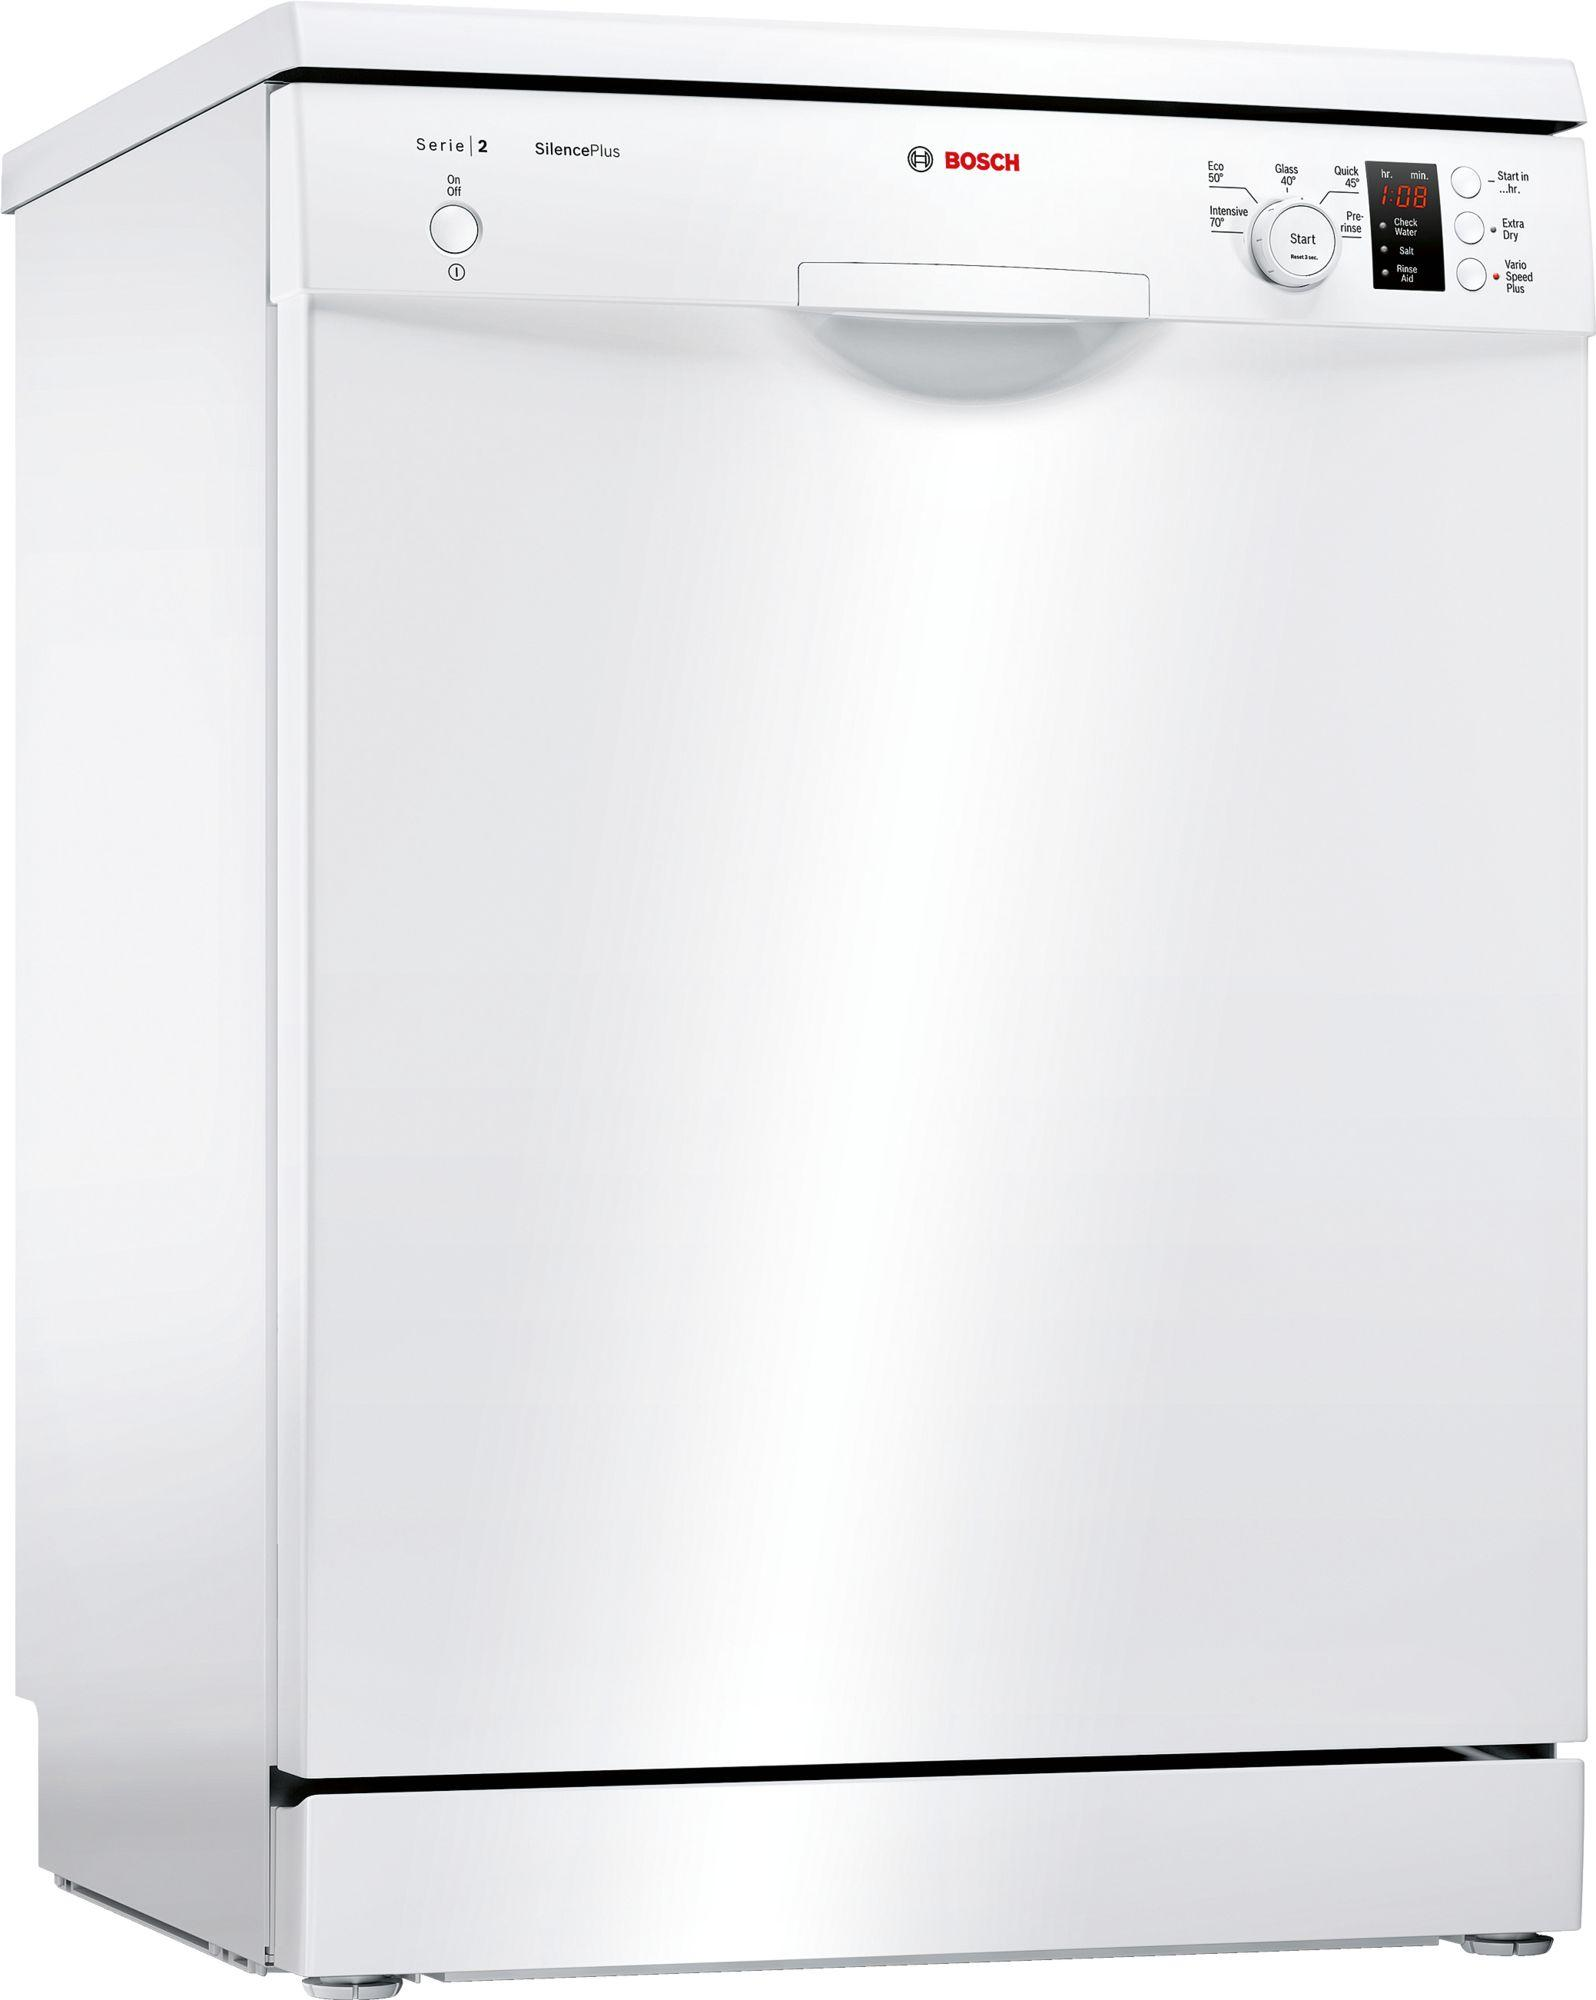 Image of Serie 2 SMS25EW00G 60cm A++ Standard Dishwasher   White